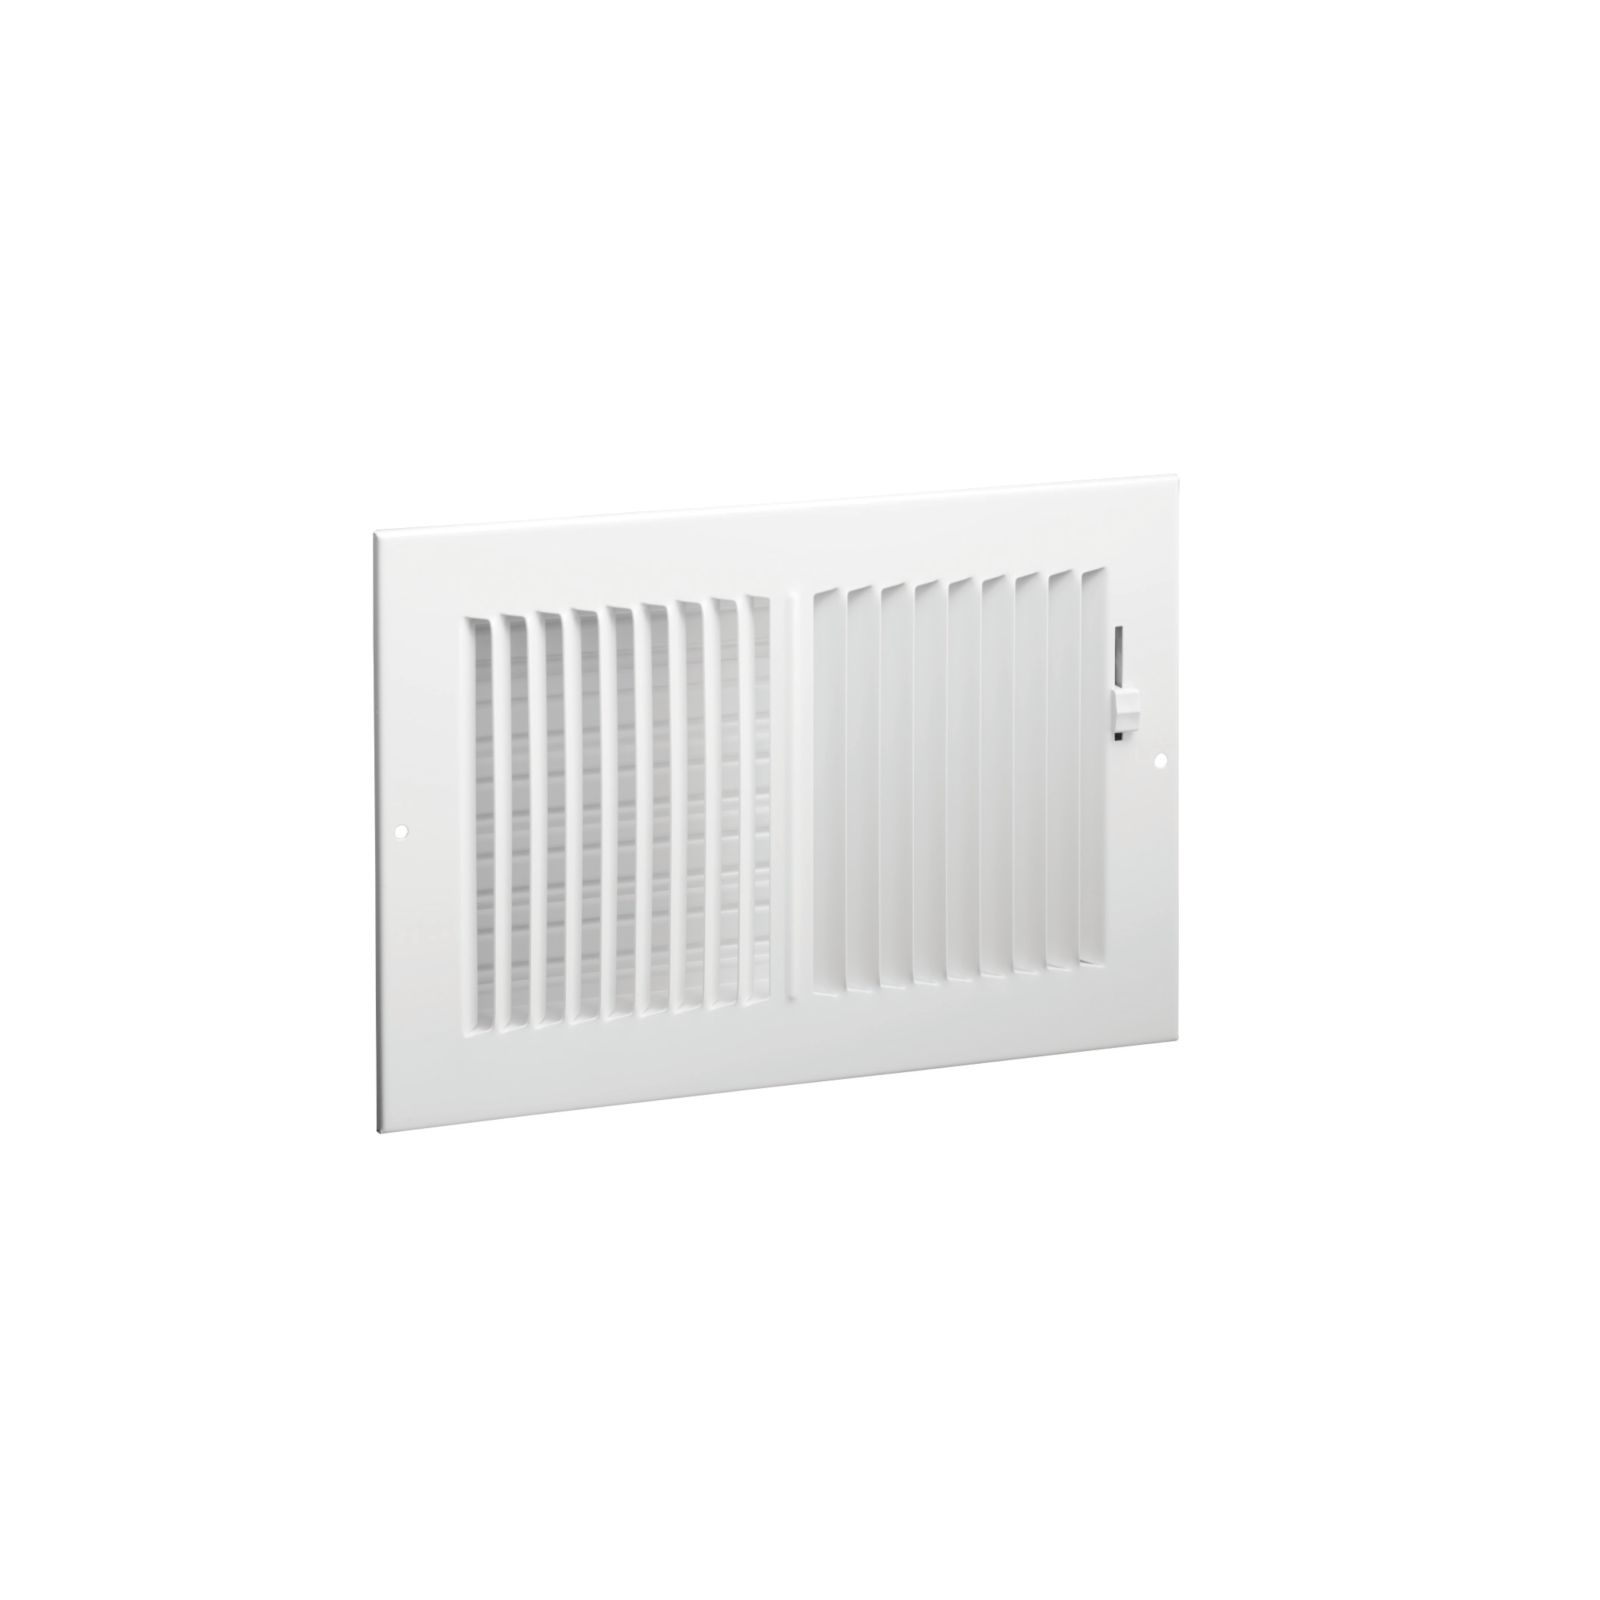 "Hart & Cooley 043827 - #682 Steel 2-Way Sidewall/Ceiling Register, Multi-Shutter Damper with Plastic Handle, White, 10"" X 4"""